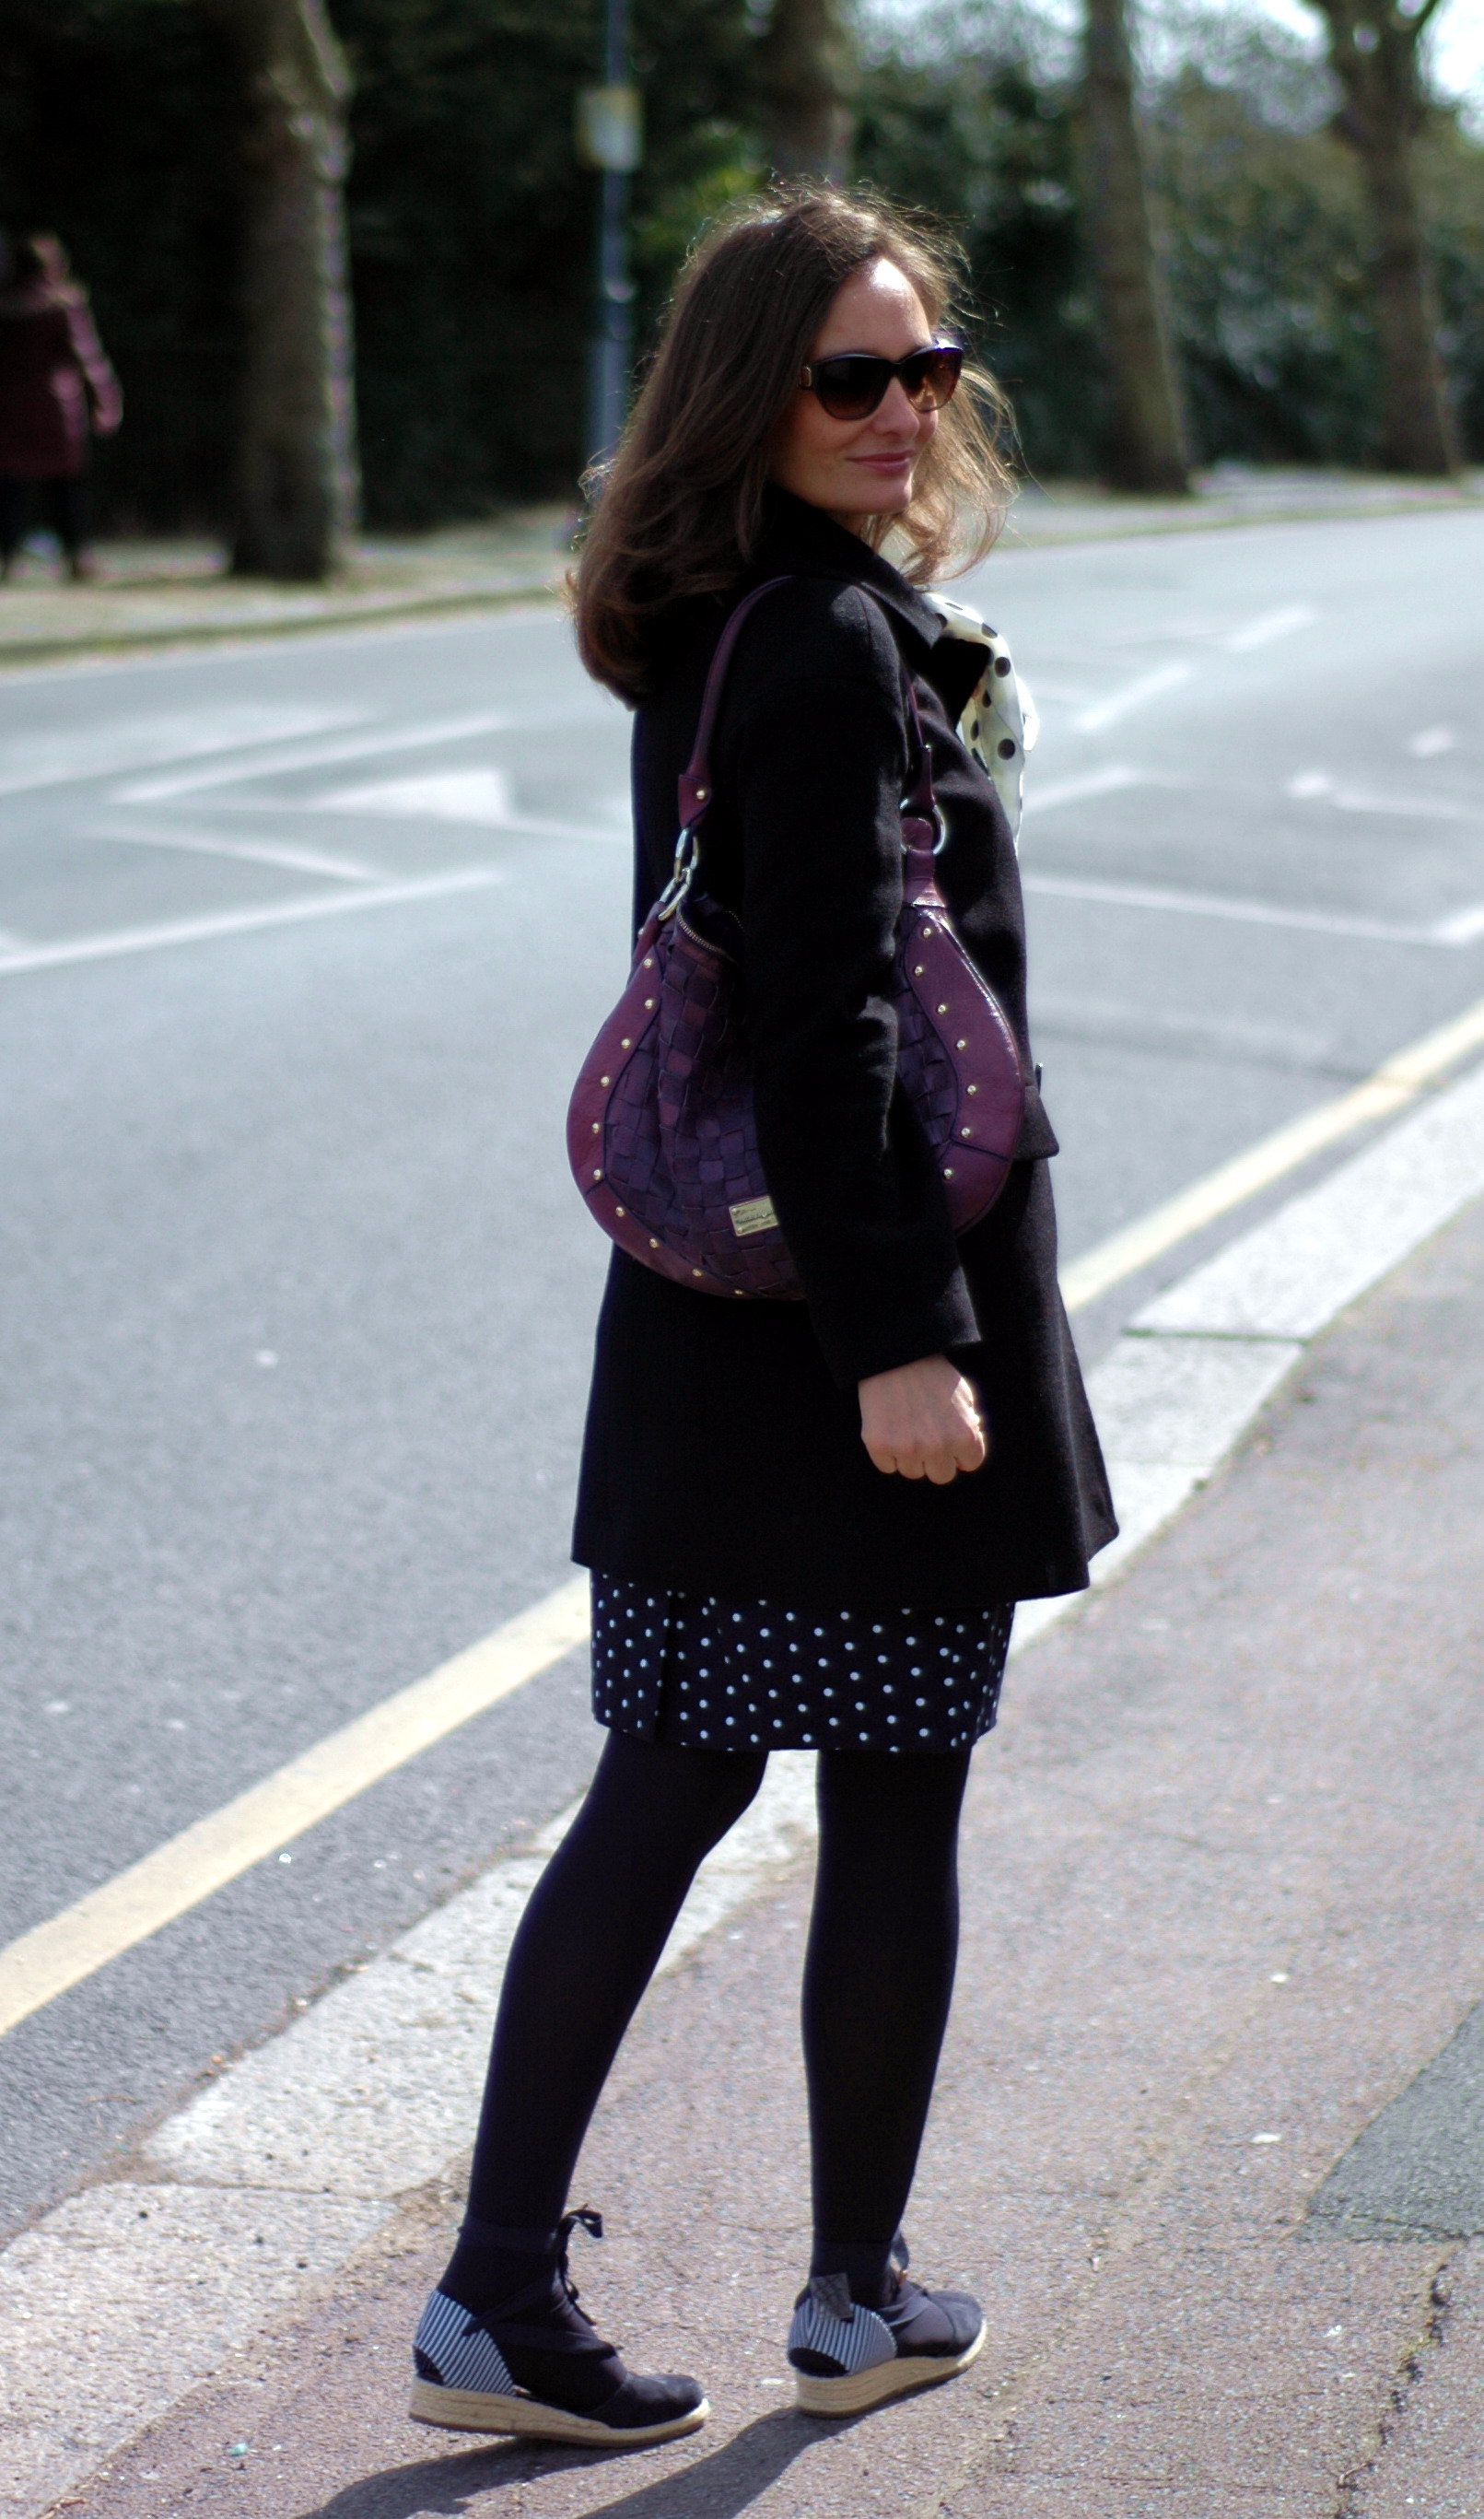 Polka dot dress and black coat